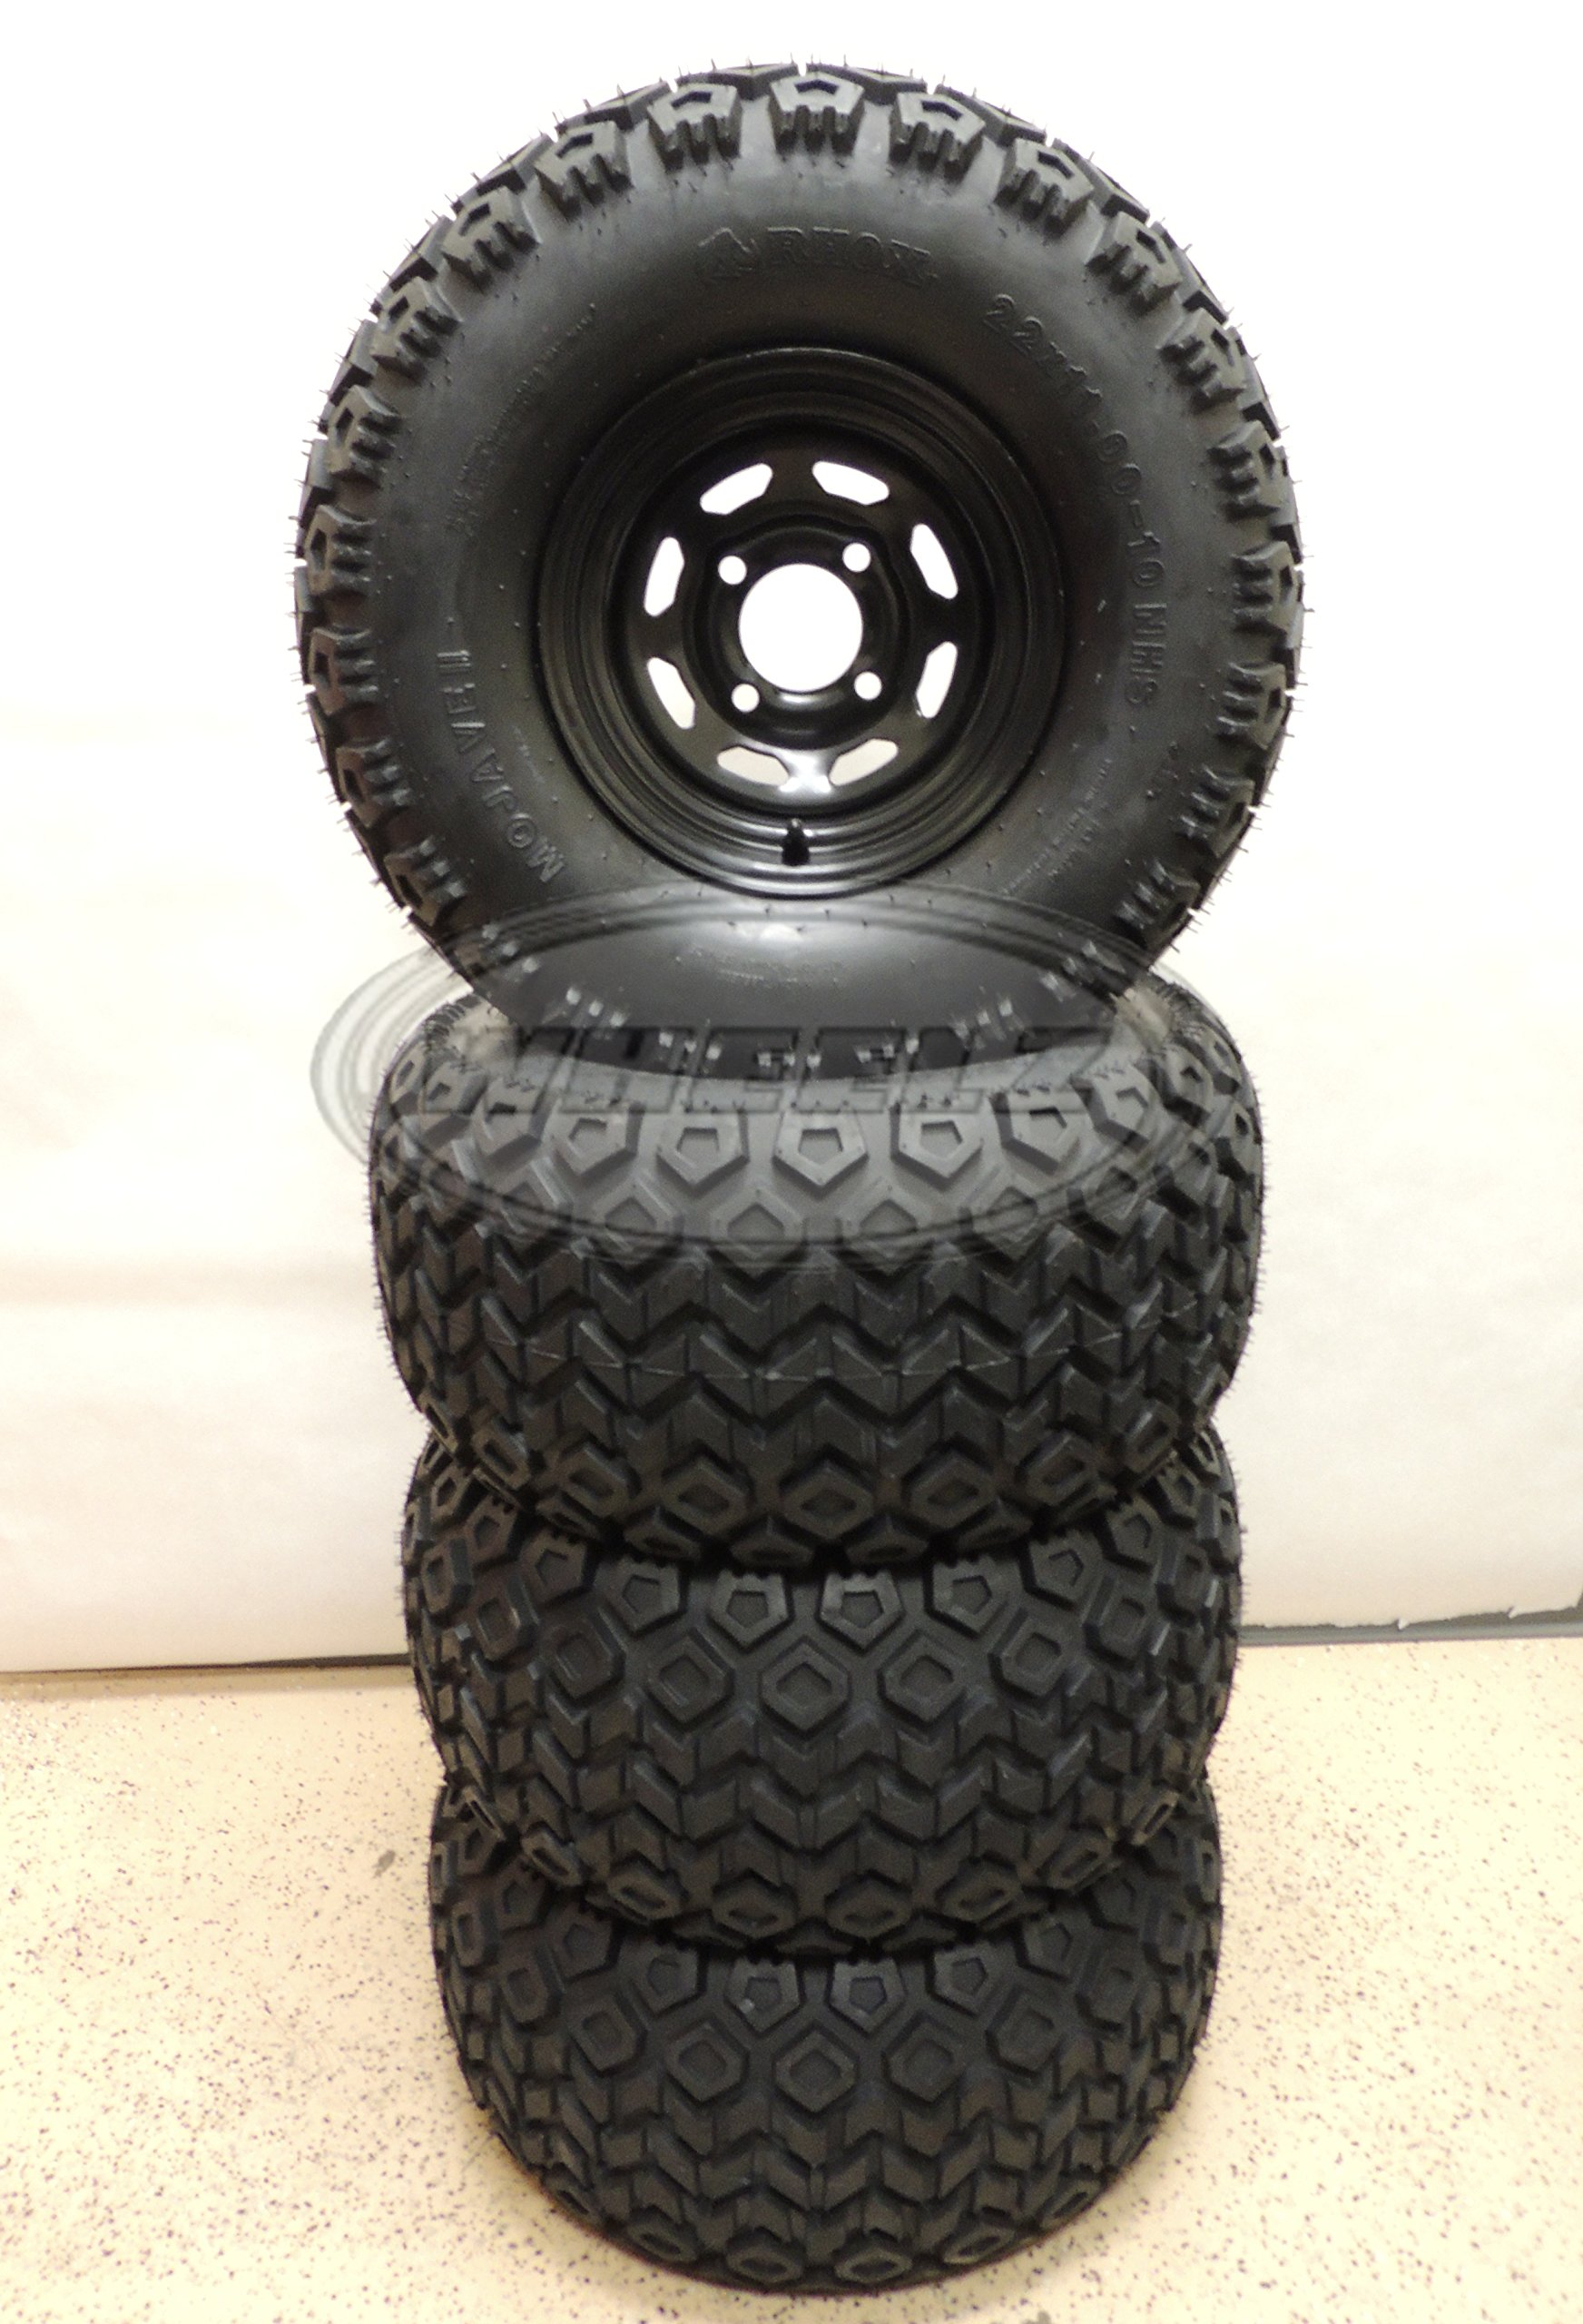 Set of (4) 22x11-10 RHOX Mojave Golf Cart Tires Mounted on Black 10x7 Steel Wheels w/ Centercaps & Lugnuts